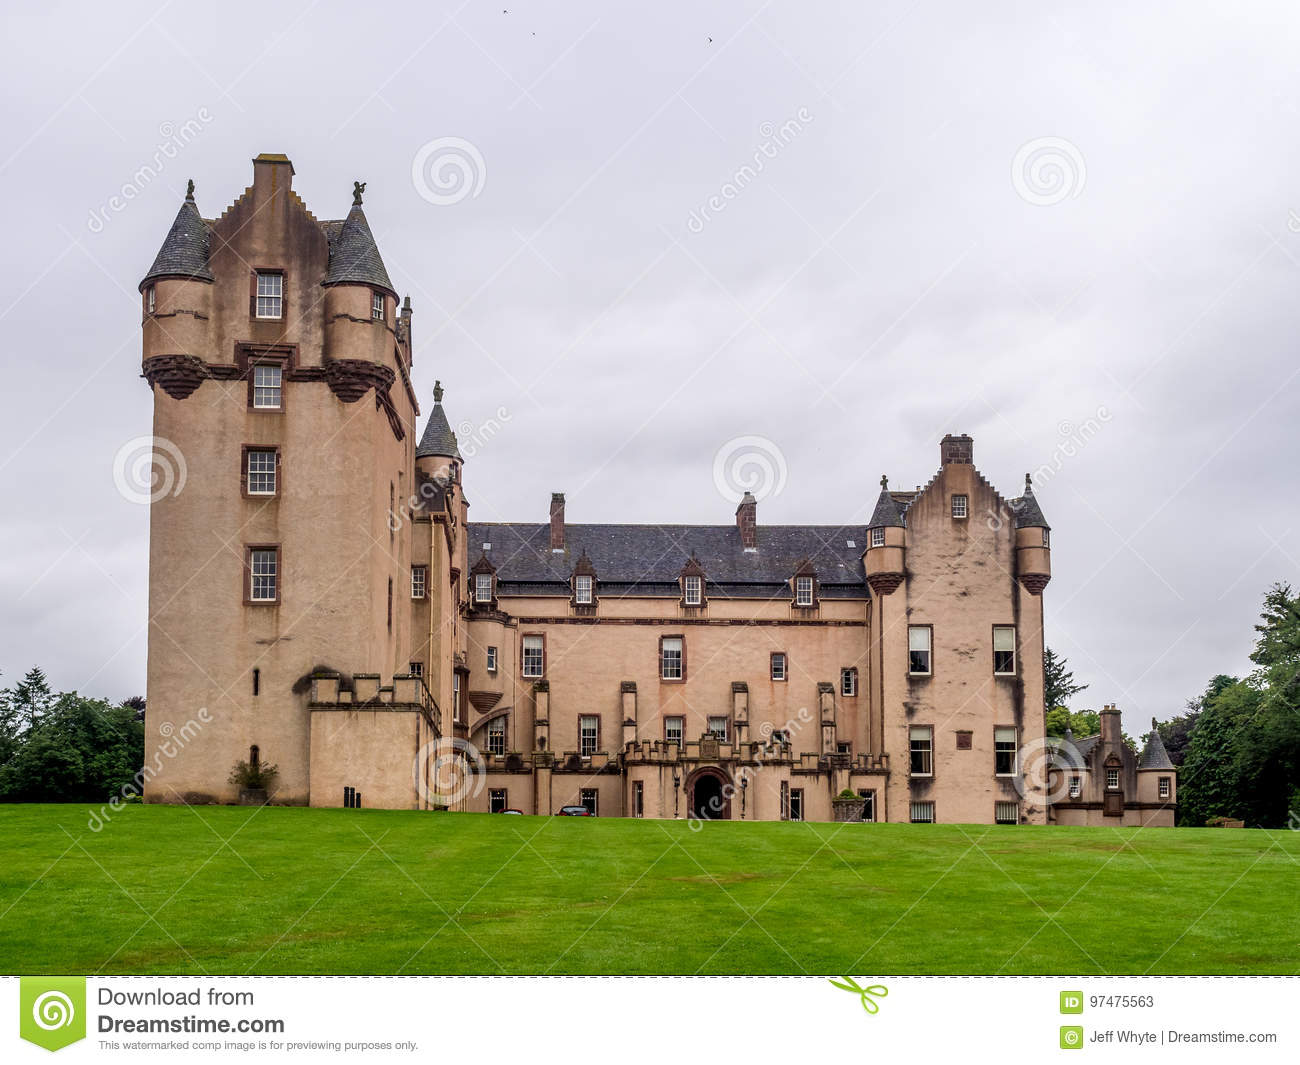 Castello di Fyvie in Scozia